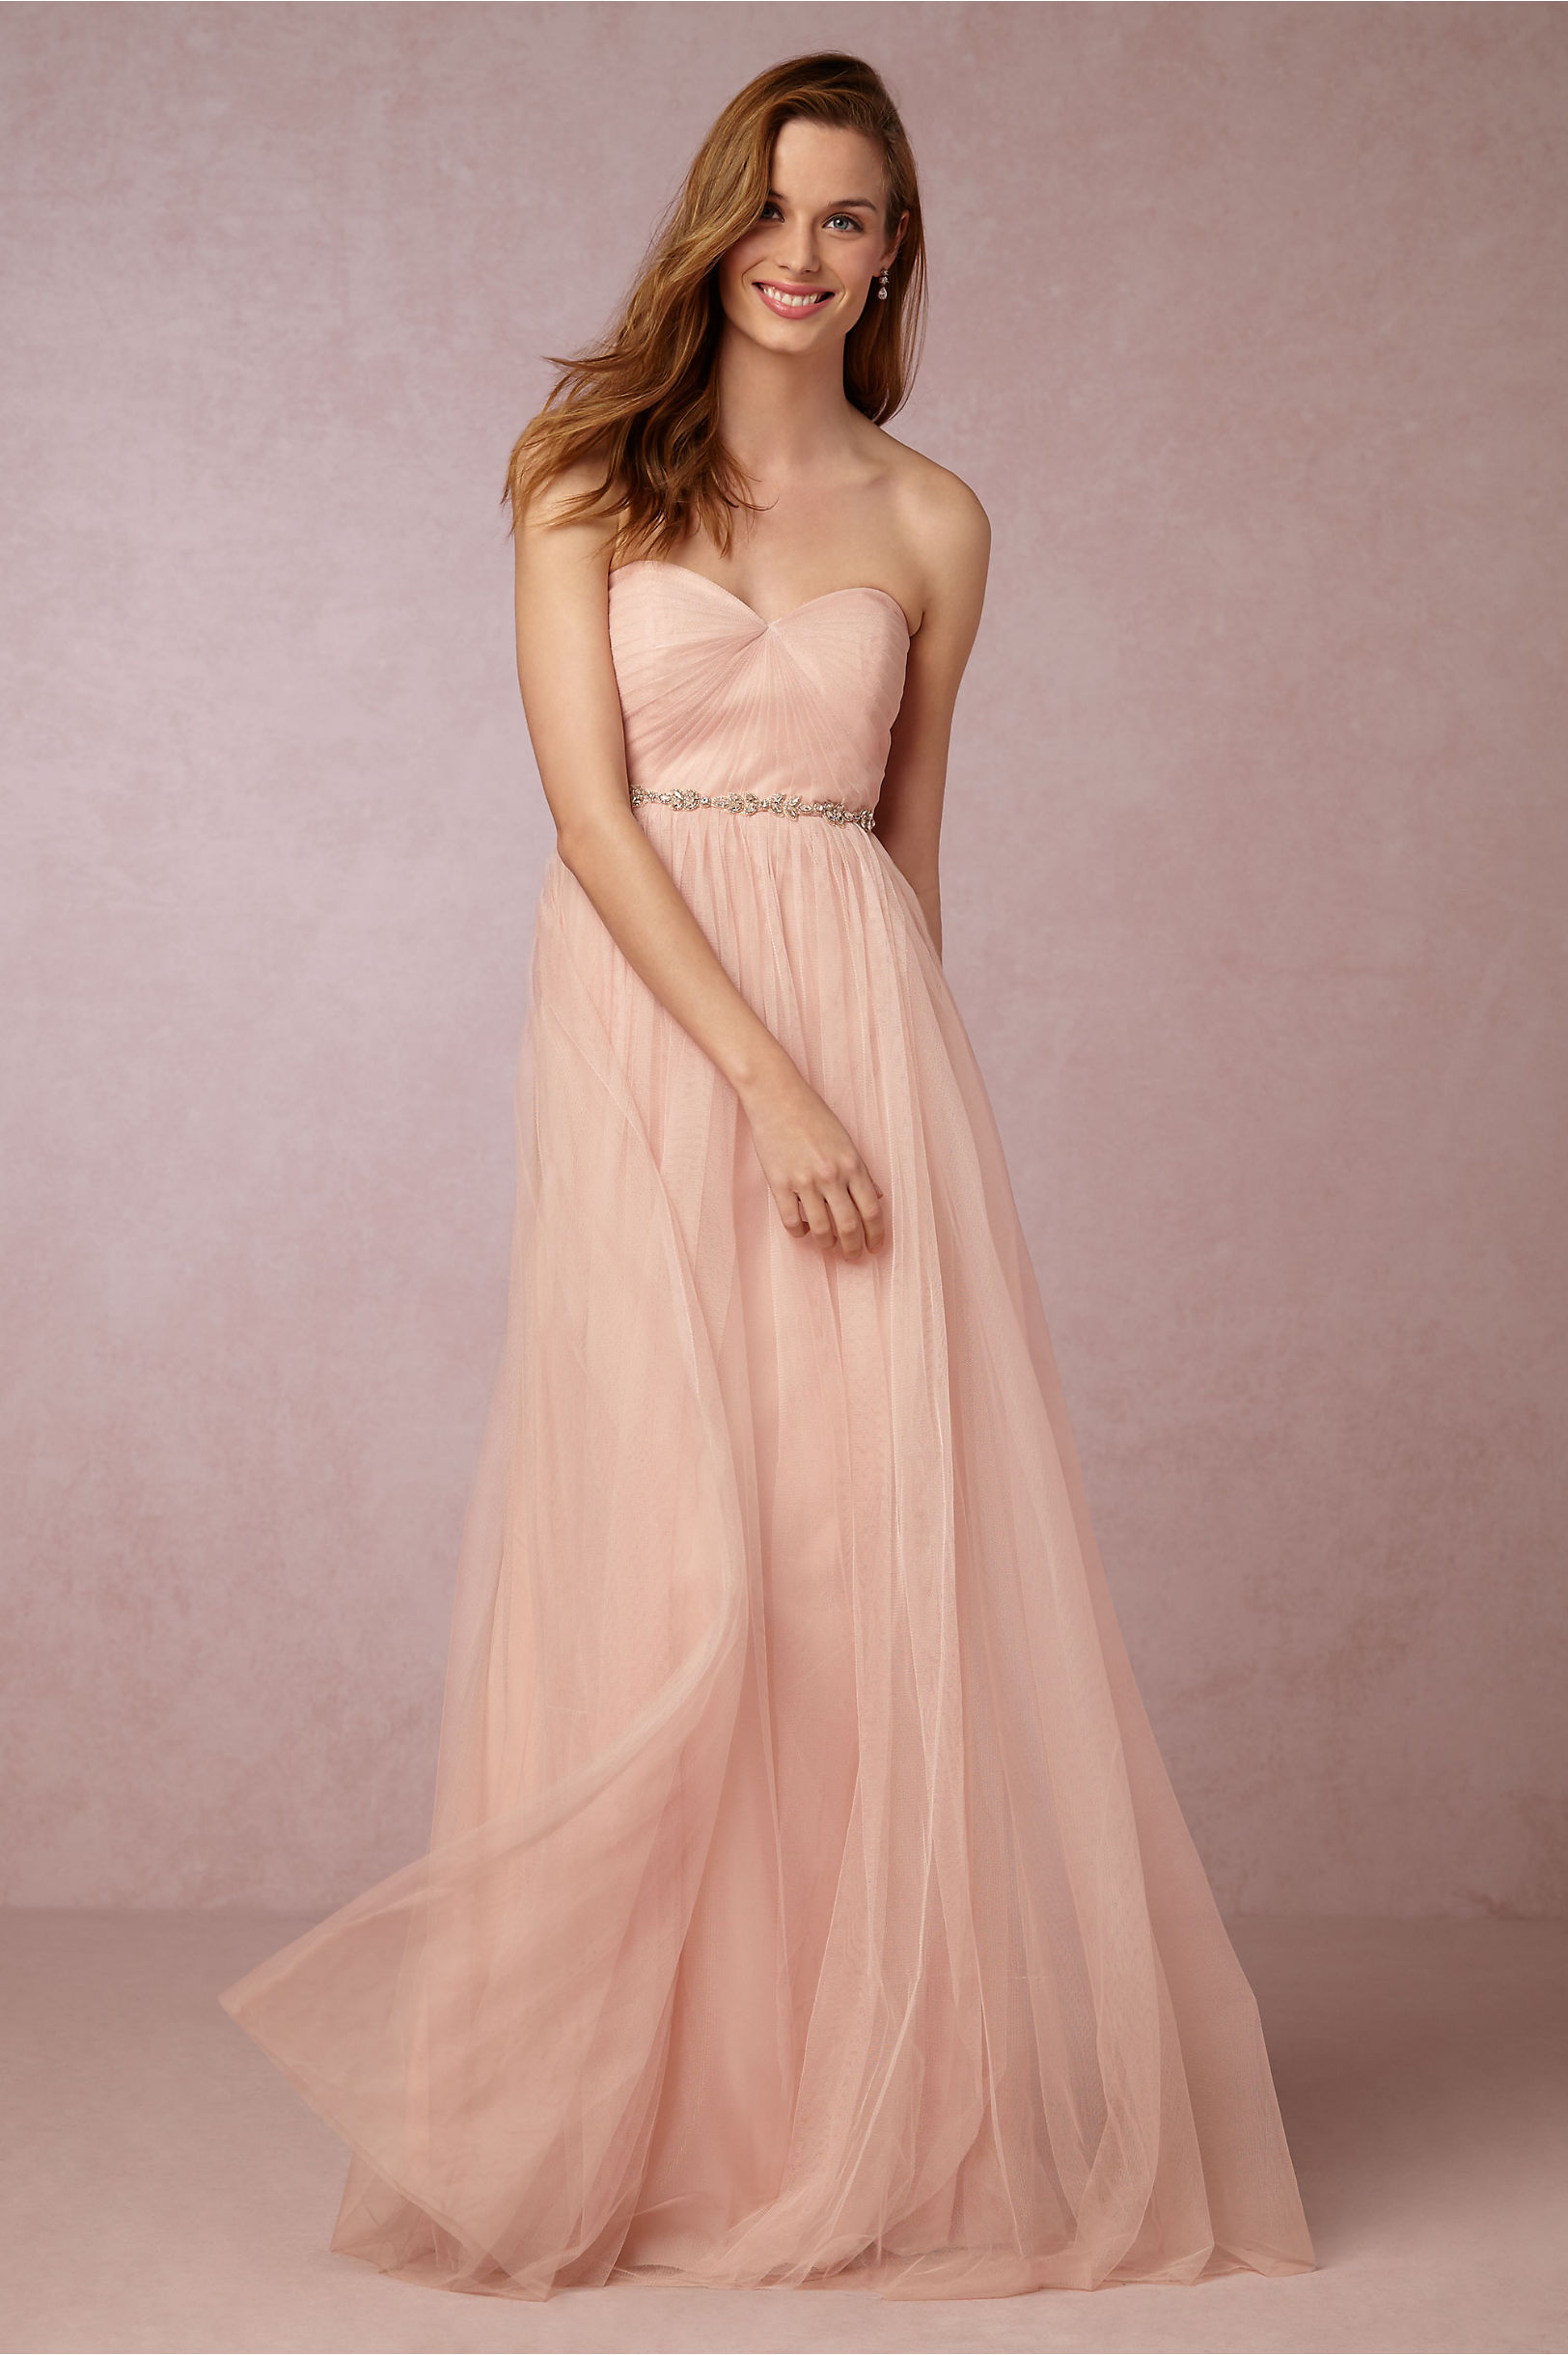 http://s7d1.scene7.com/is/image/BHLDN/30434815_065_a?$zoom-xl$